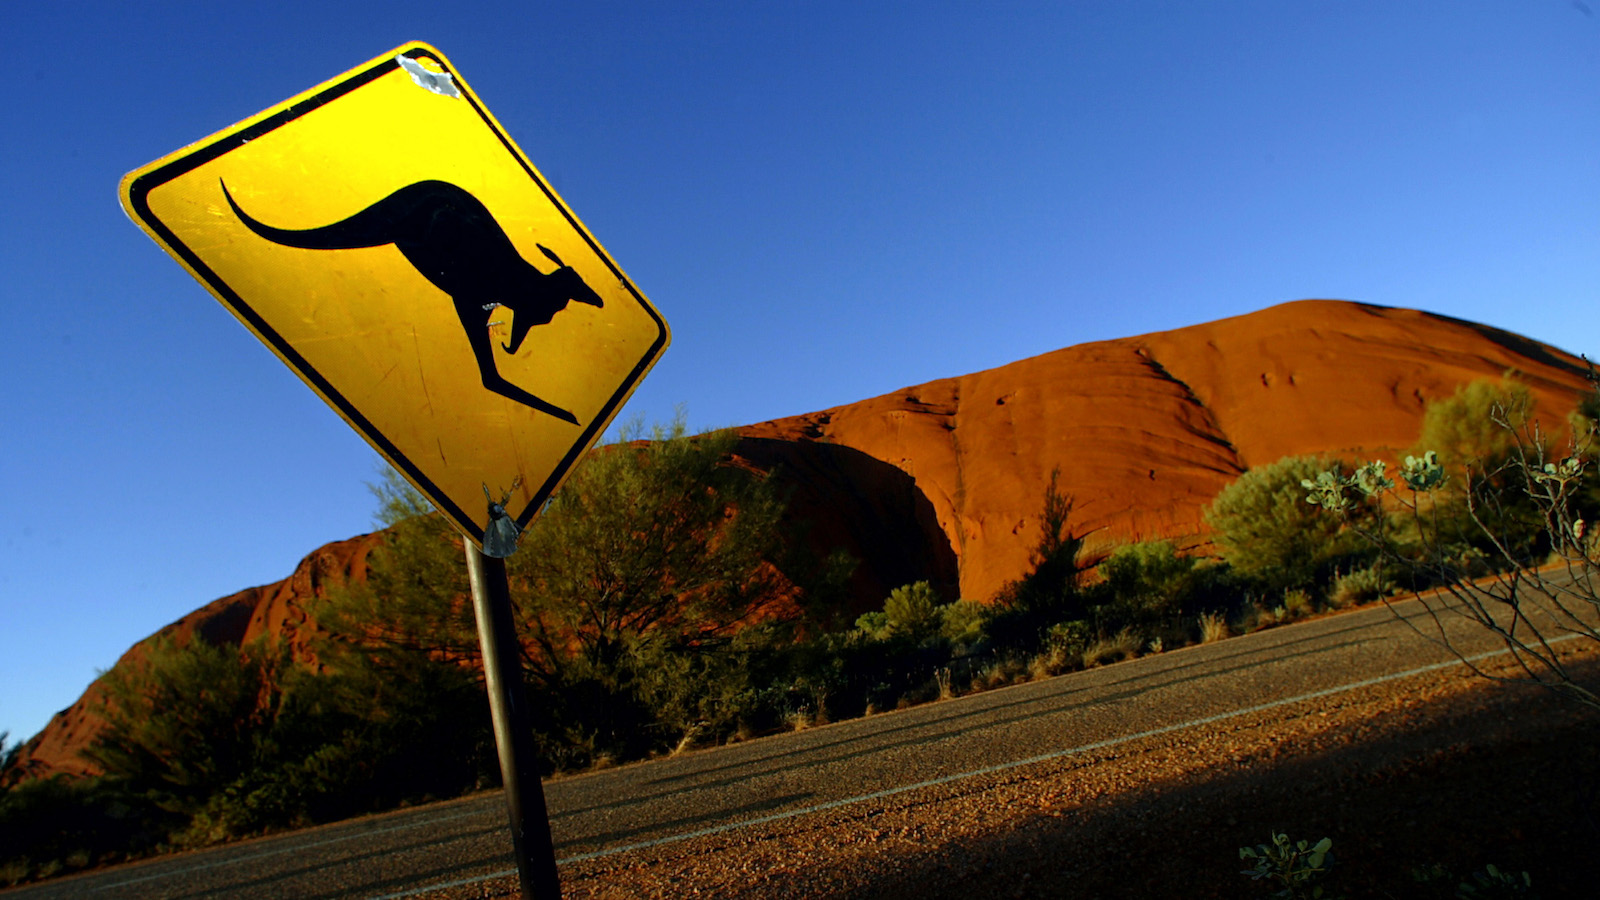 -PHOTO TAKEN 20APR04- A road sign near Uluru (Ayers Rock), about 350 kilometres (220 miles) south west of the central Australian town of [Alice Springs] warns drivers of the dangers of kangaroos crossing the road April 20, 2004. 40 years ago Uluru, which belongs to the Anangu Aboriginal people, was visited by around 1,000 tourists annually. Since then it has become one of Australia's major tourist destinations, attracting 400,000 visitors every year. - RTXMK0L